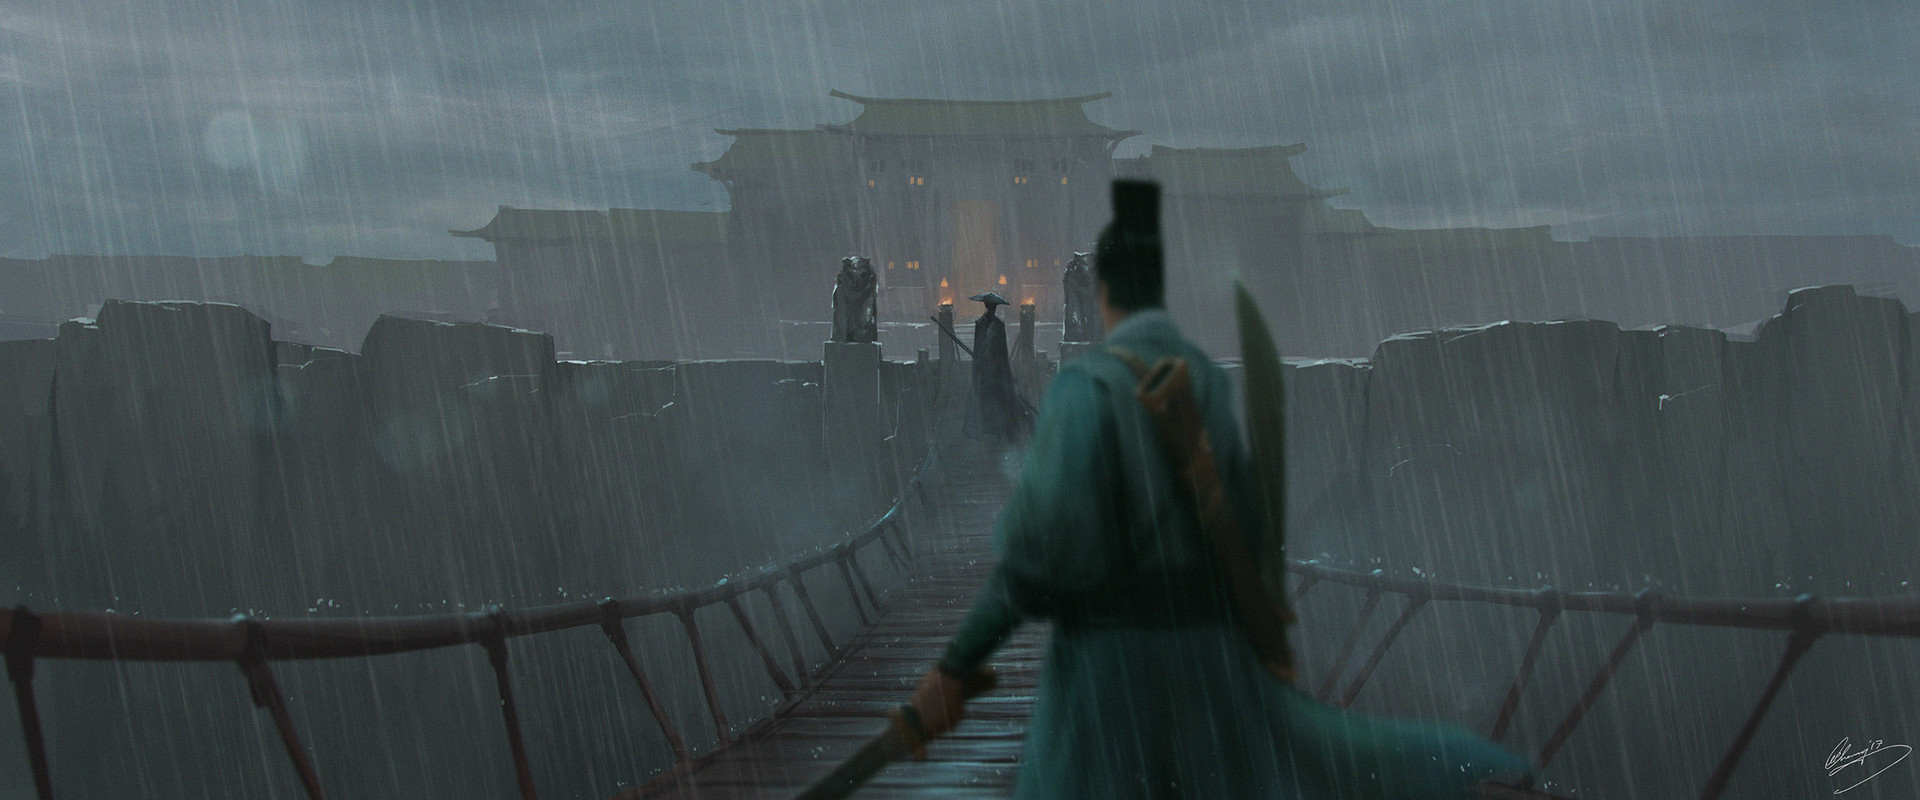 Lap pun cheung ancient civilizations keyframe 2 bridge encounter online